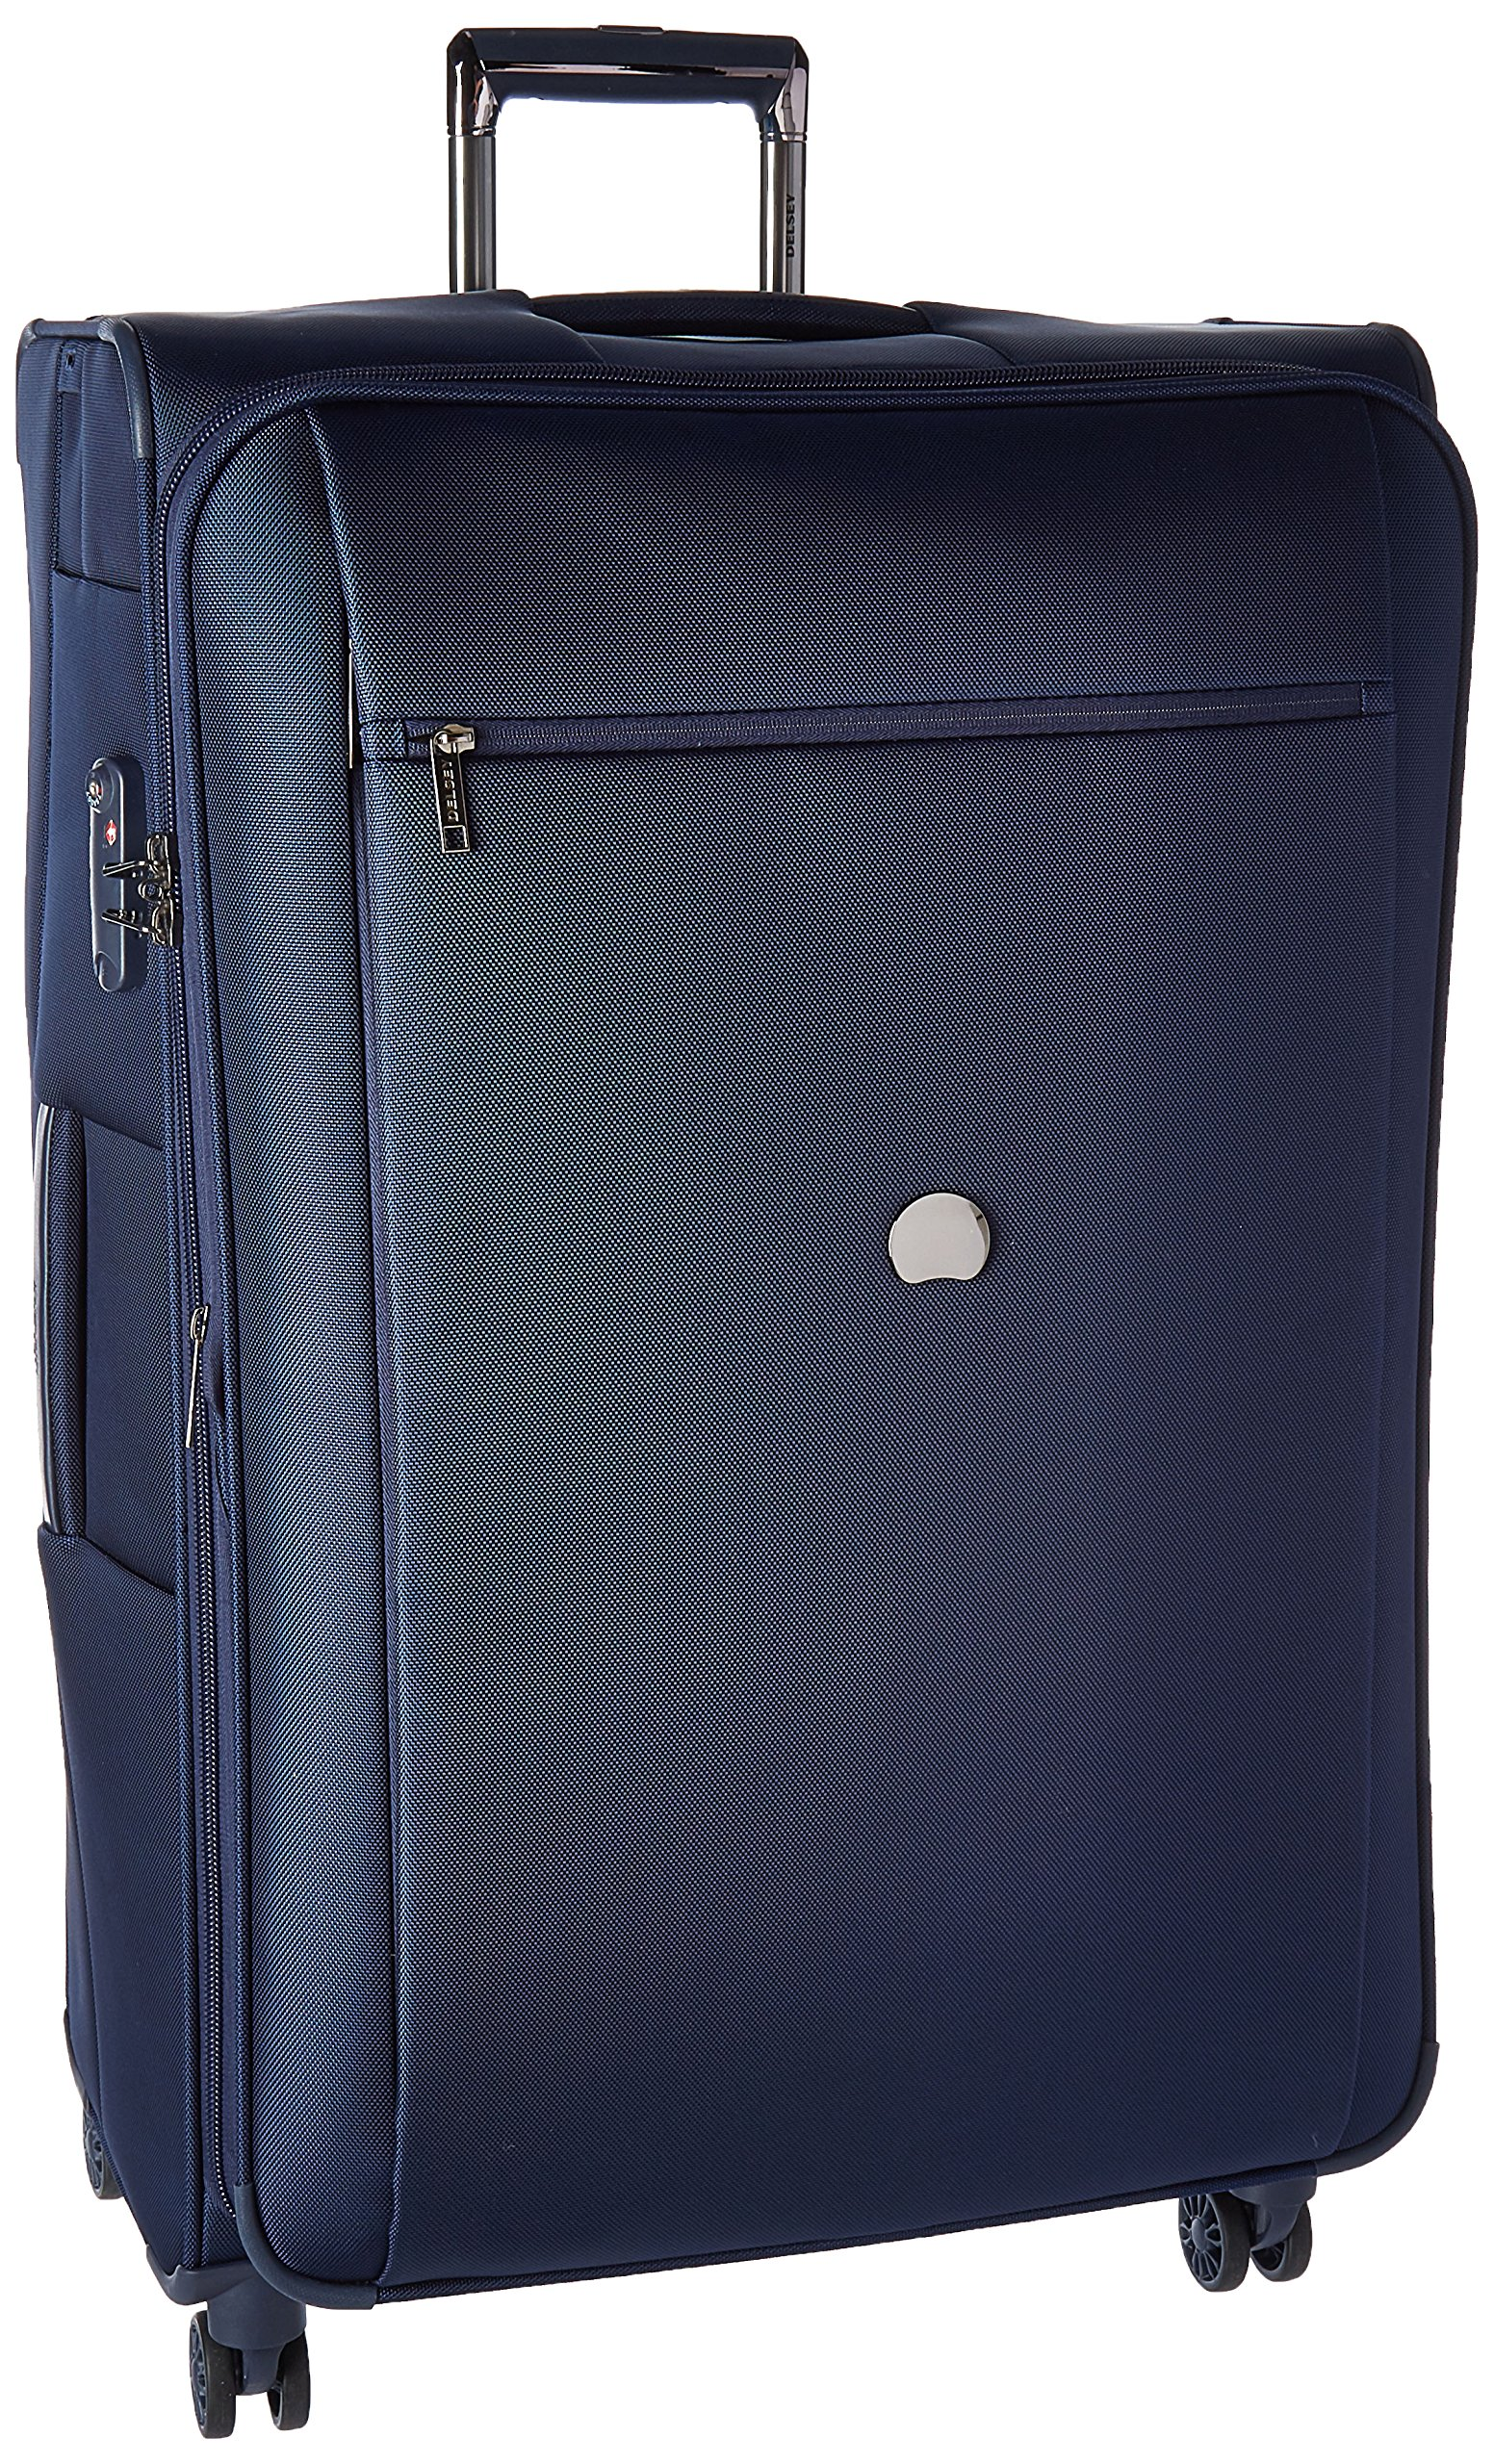 Delsey Luggage Montmartre+ 29 Inch Expandable Spinner Suitcase, Navy by DELSEY Paris